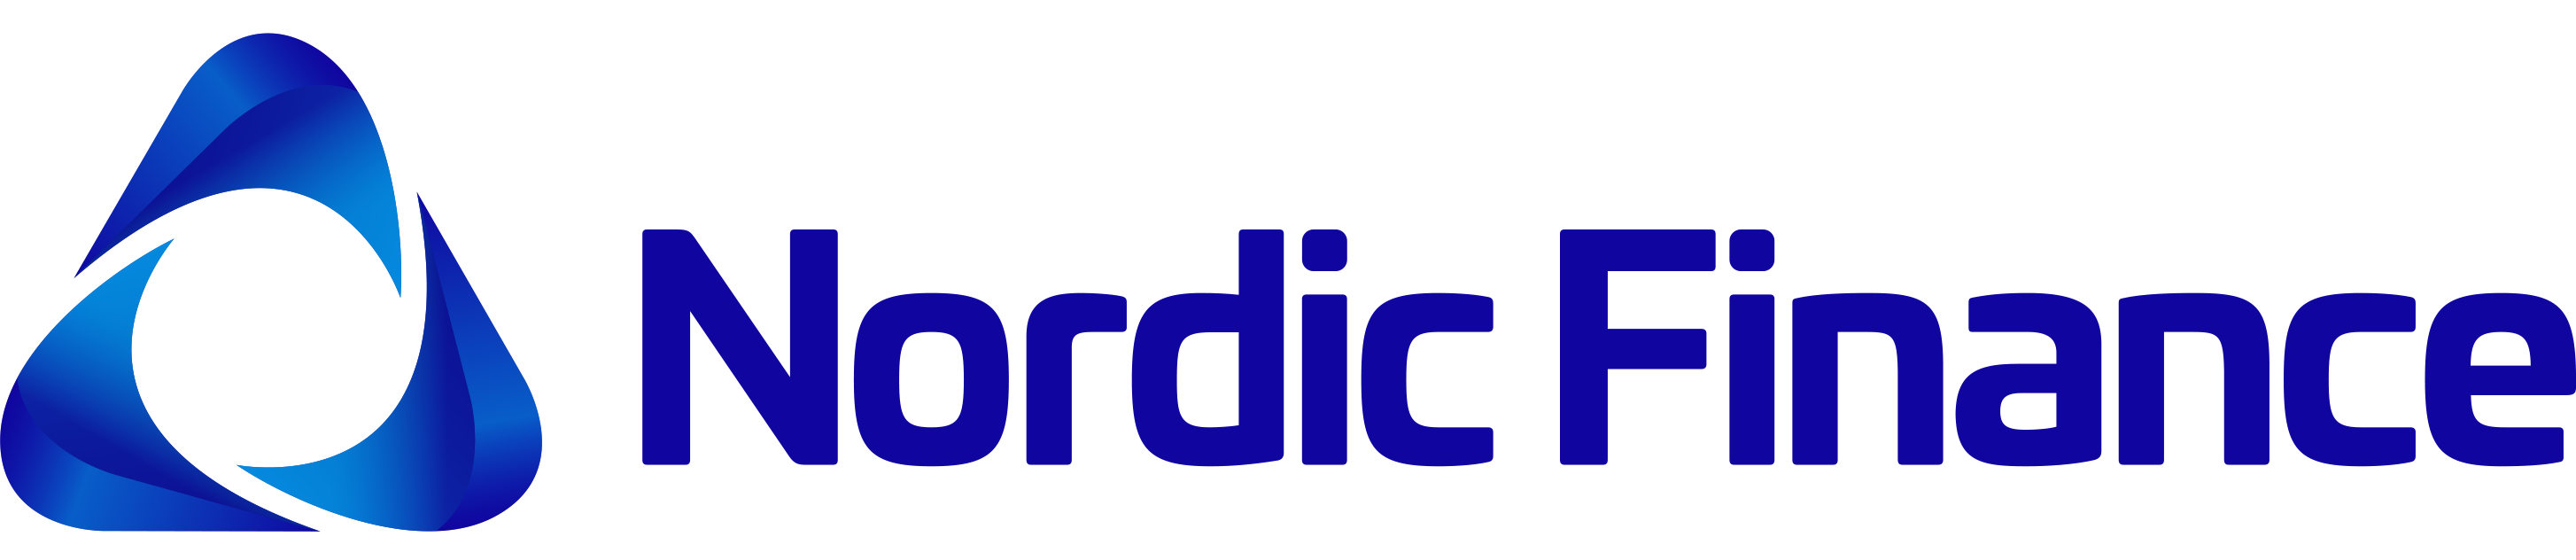 NordicFinance_logo_3D